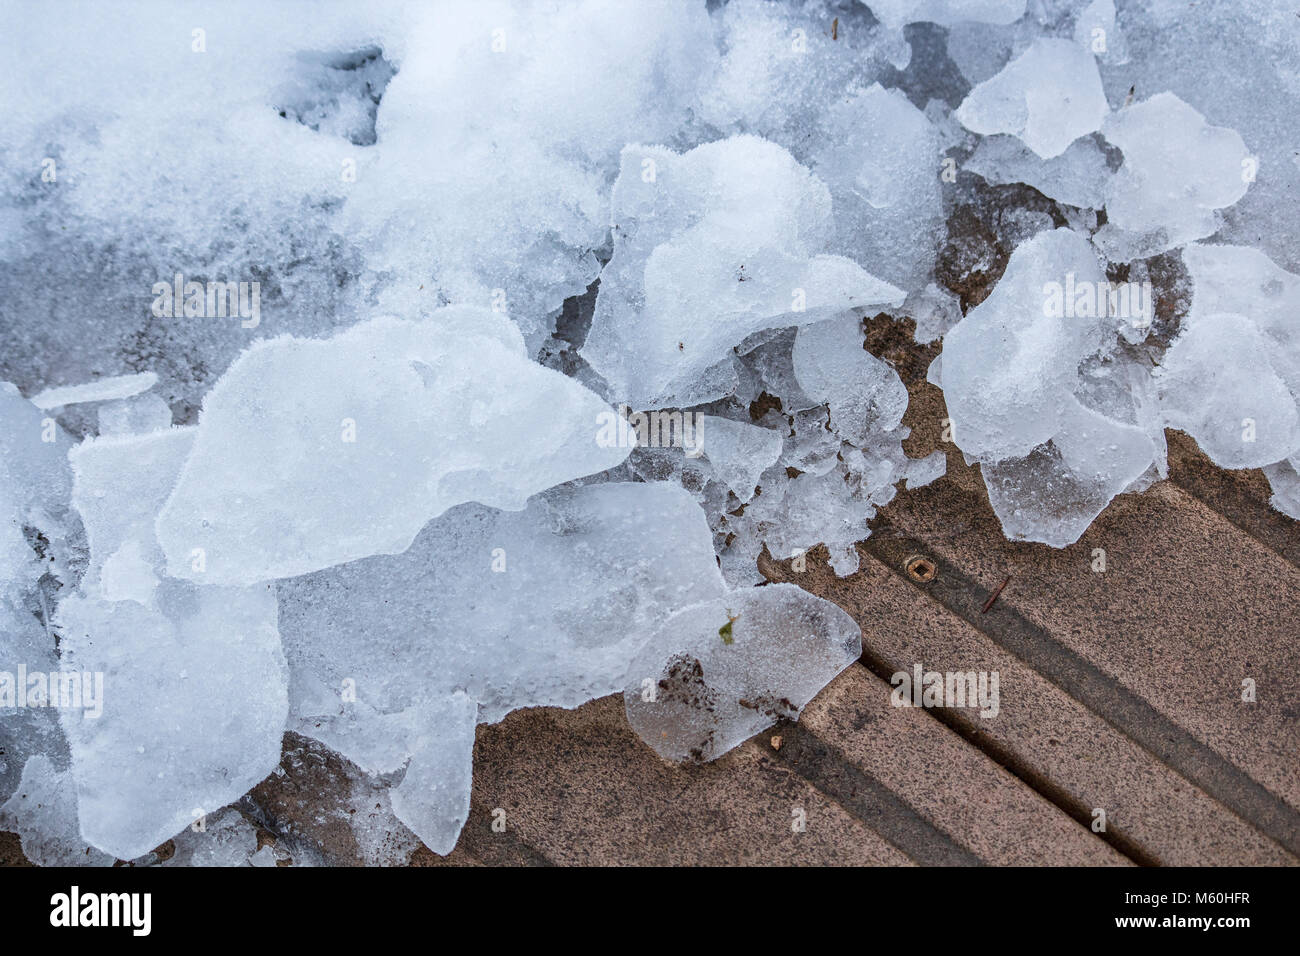 A semi-abstract view of the contrasting colour tones and textures of icy chunks of snow beside a cleared portion - Stock Image